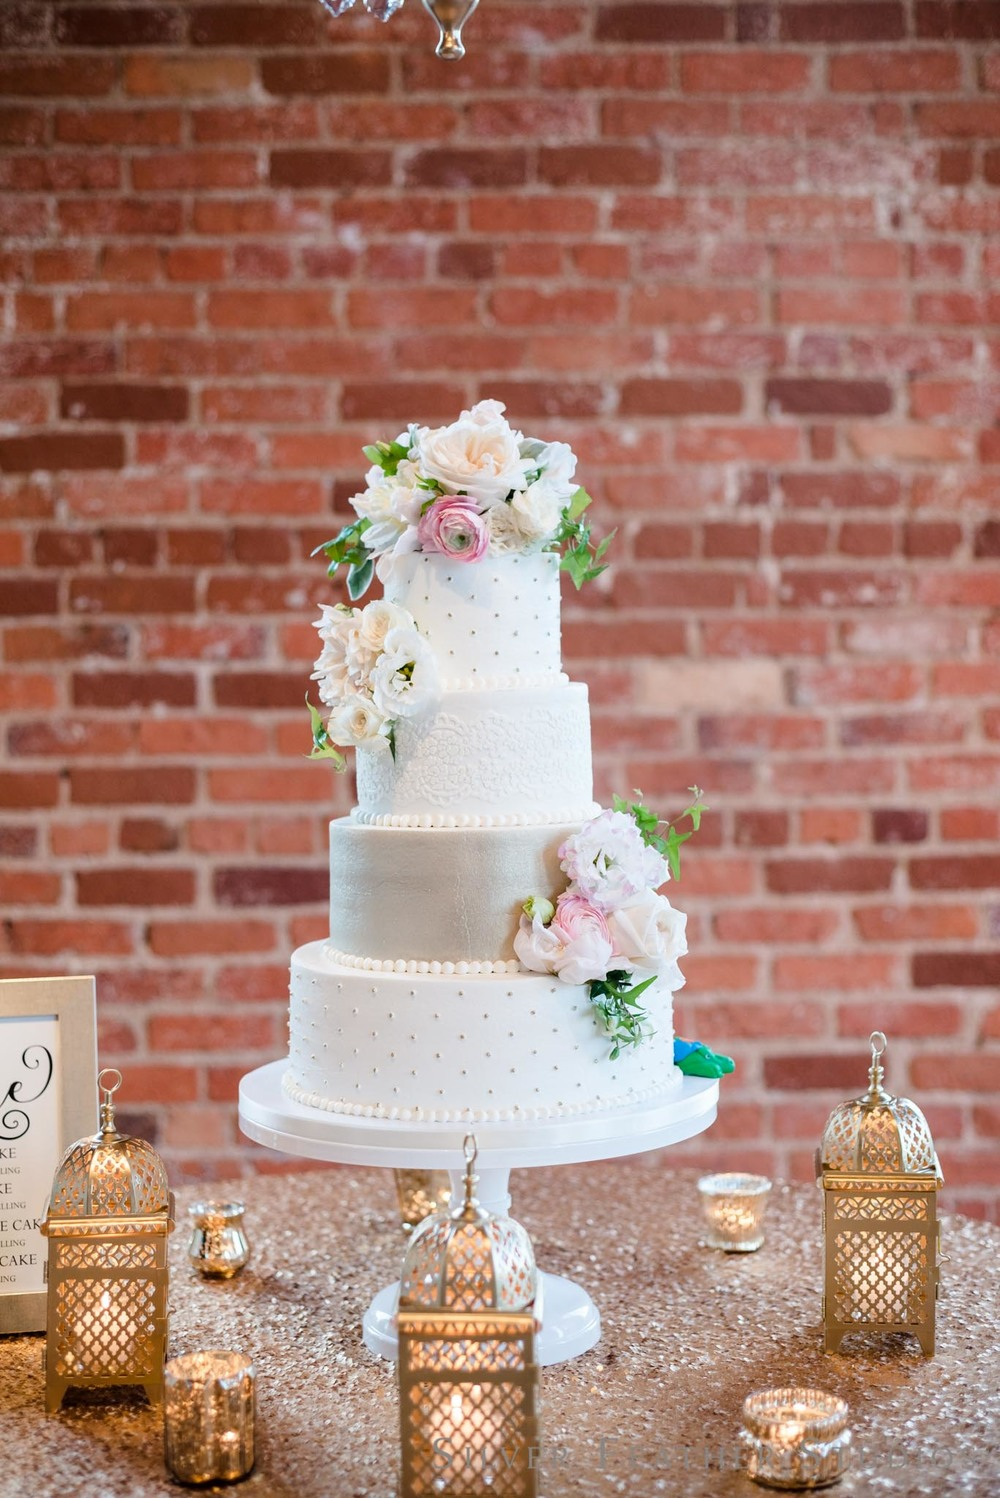 Four tier champagne colored wedding cake by Ashley Cakes in Durham, NC. © Silver Feather Studios, wedding photographer in Durham